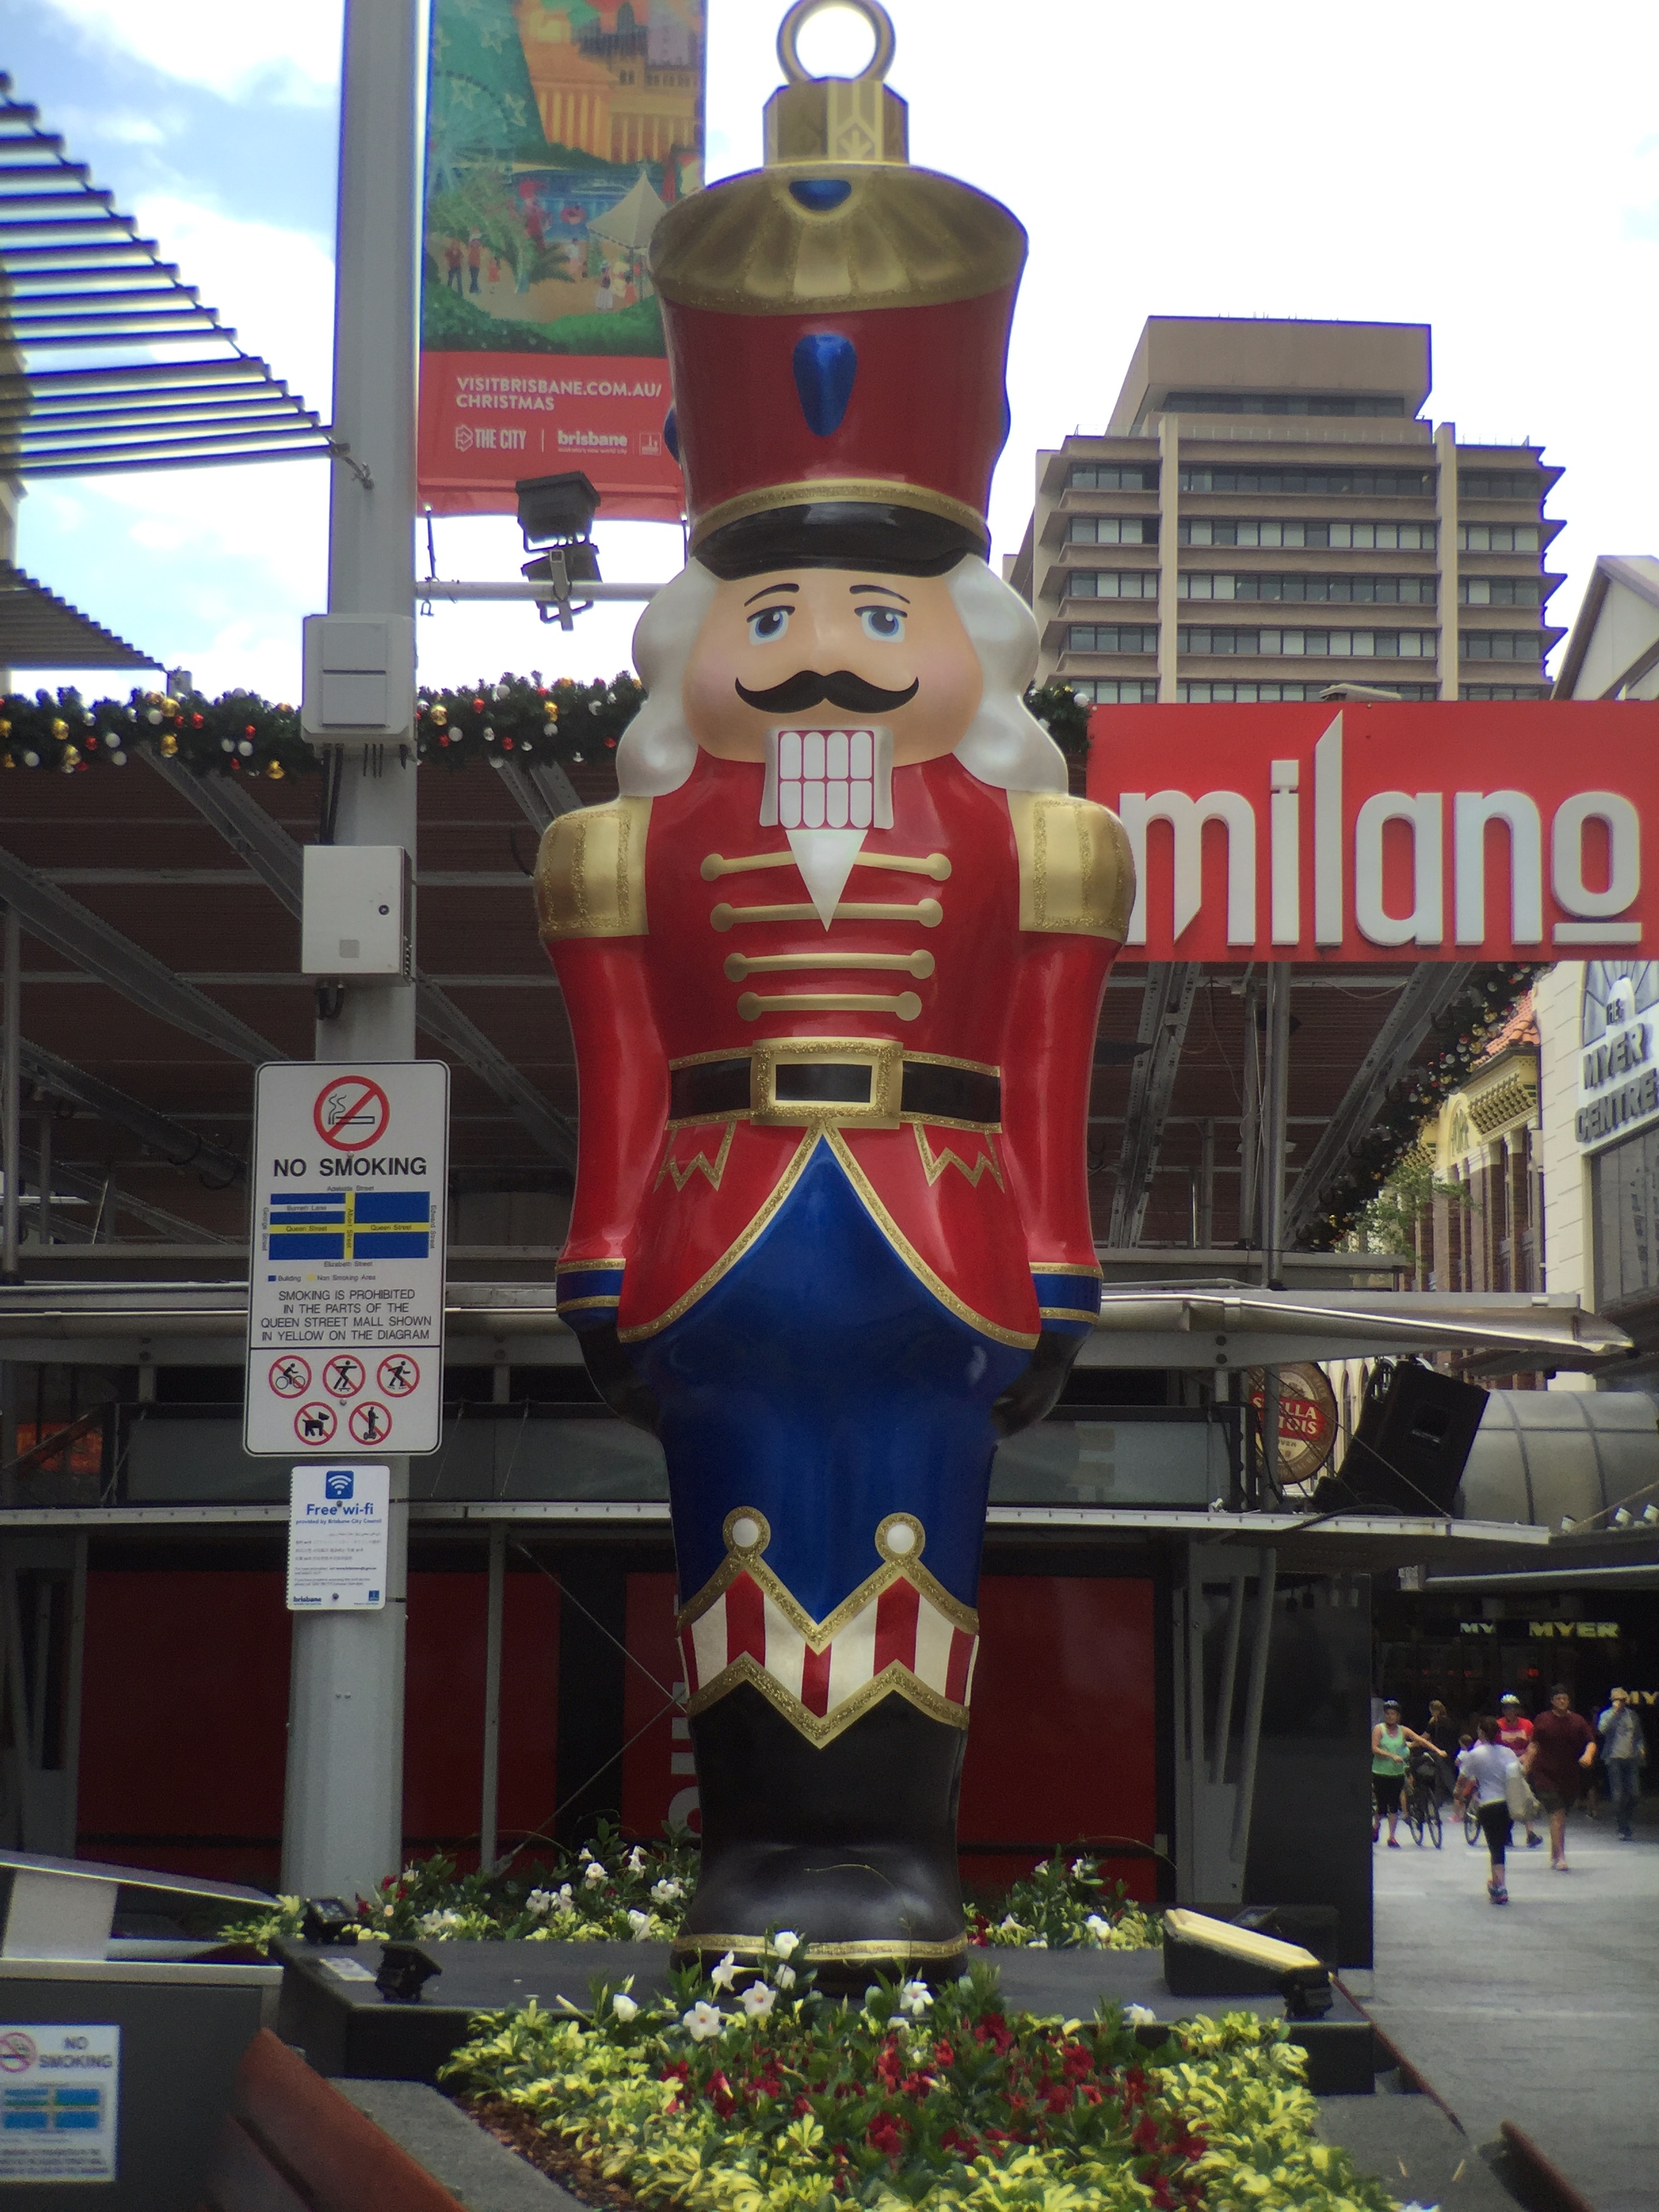 filechristmas decorations in queen street mall brisbane in 2015 03jpeg - Queen Christmas Decorations